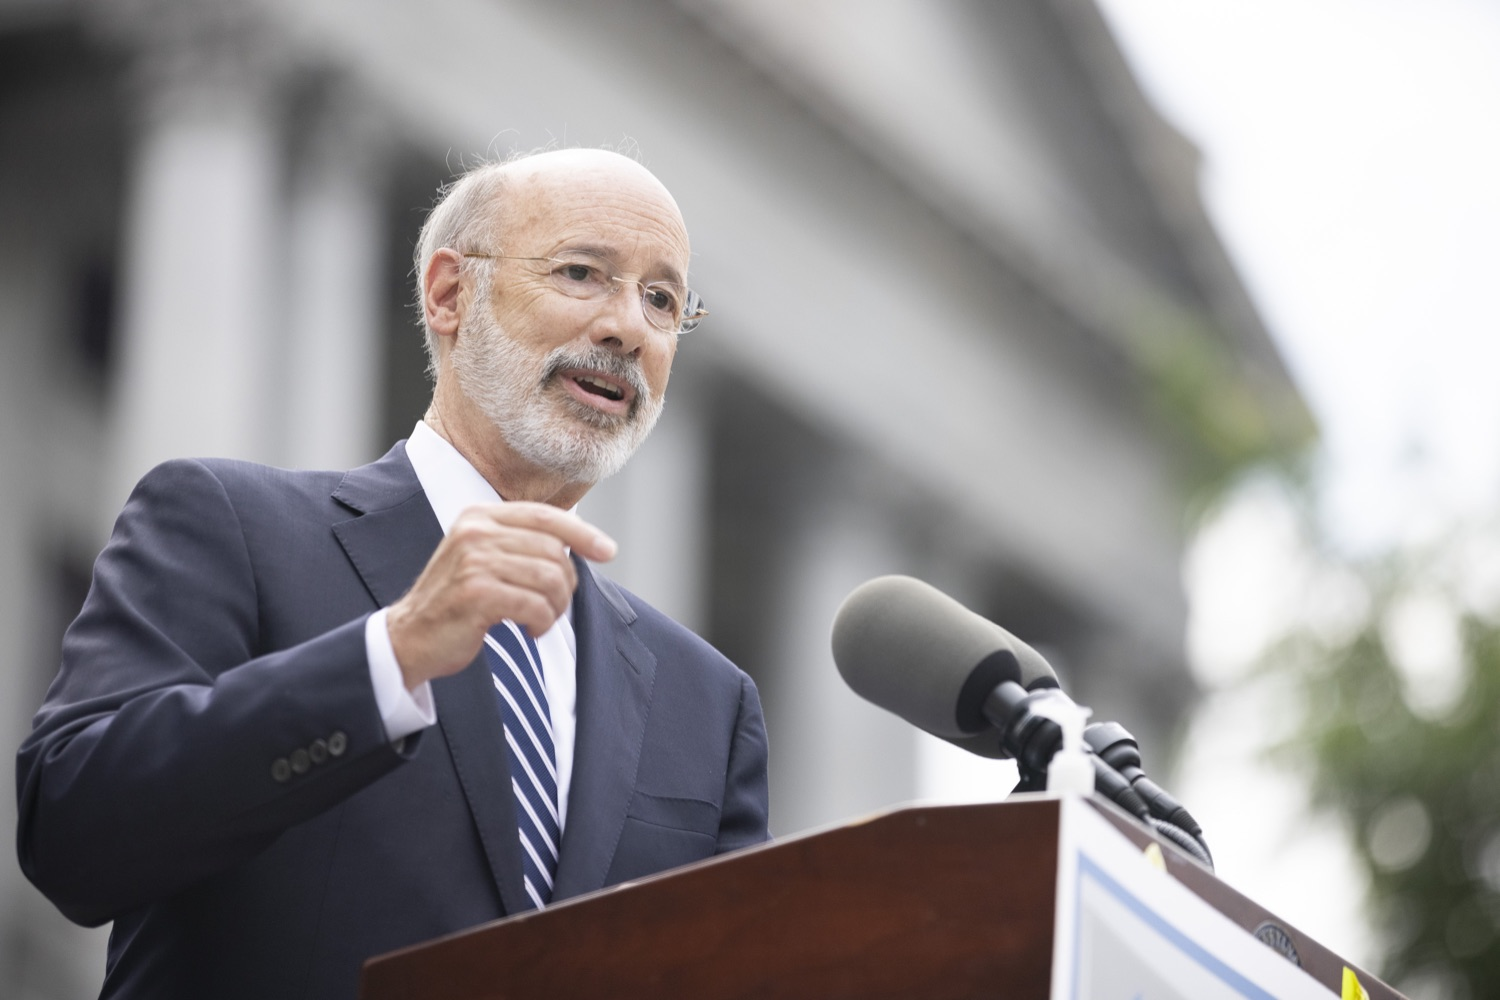 """<a href=""""https://filesource.wostreaming.net/commonwealthofpa/photo/18810_gov_fairFunding_dz_024.jpg"""" target=""""_blank"""">⇣Download Photo<br></a>Pennsylvania Governor Tom Wolf speaking at the event. Continuing their commitment to students and working families, Governor Tom Wolf and House and Senate Democratic Leaders held a Capitol press conference today to highlight the injustice in the states school funding system and call for fair funding of every district.  Harrisburg, PA   June 8, 2021"""